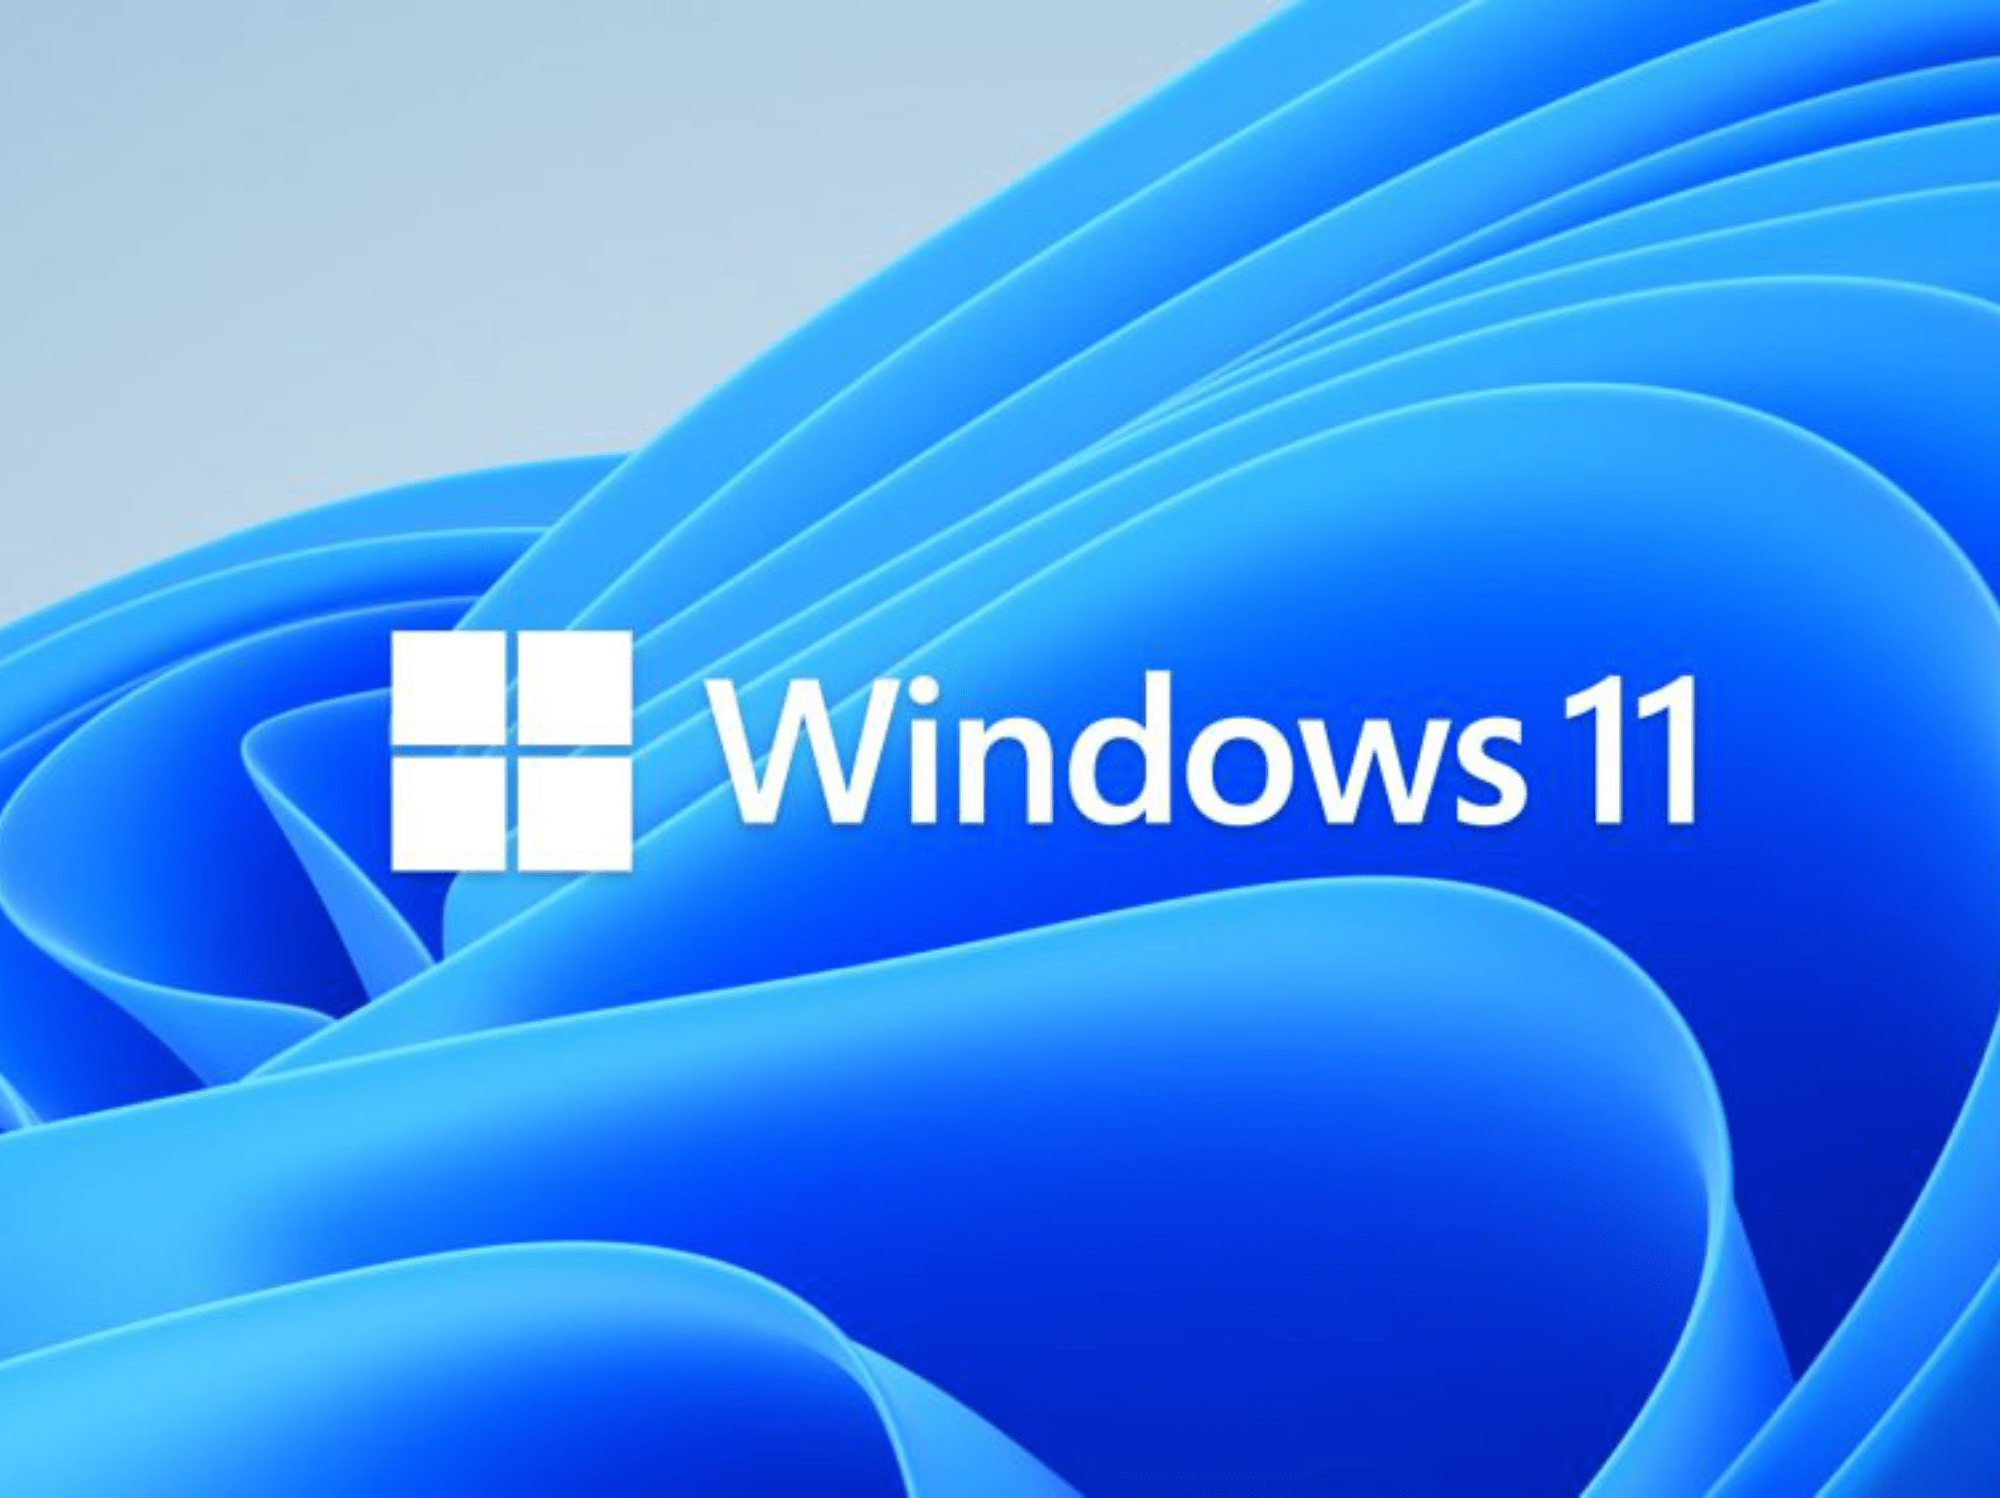 How to install Windows 11 on your PC today